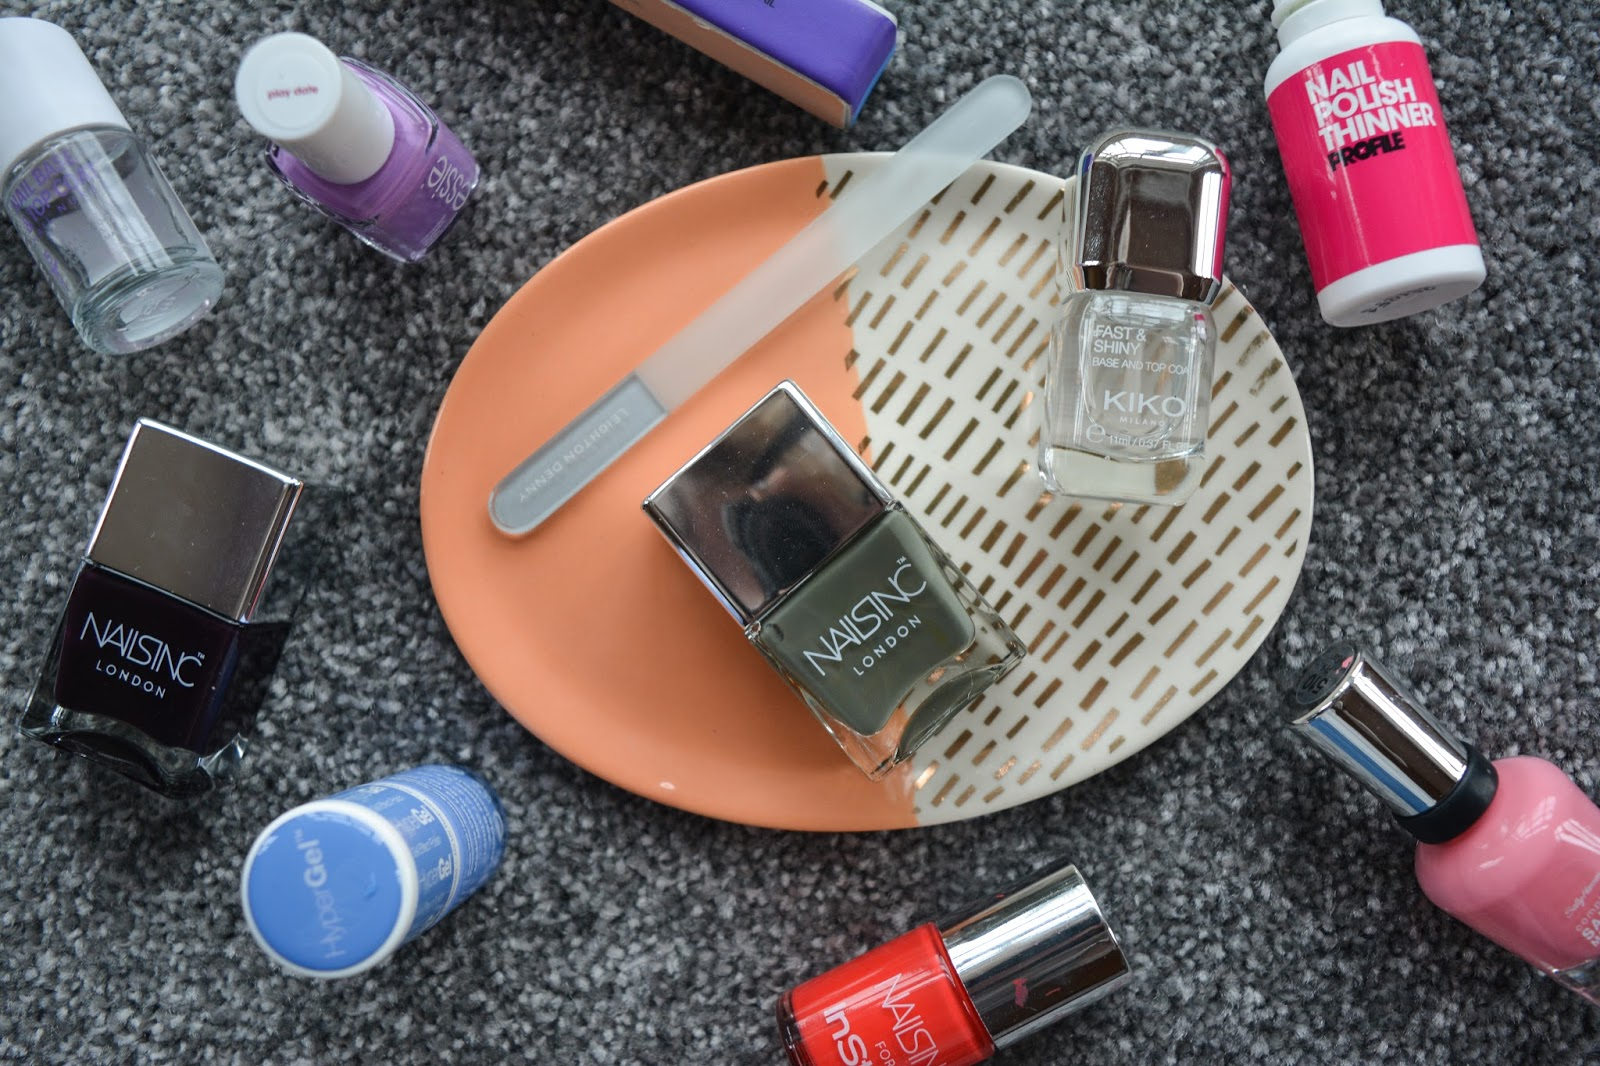 Nail Painting Tips & Tricks | The Burning Wick